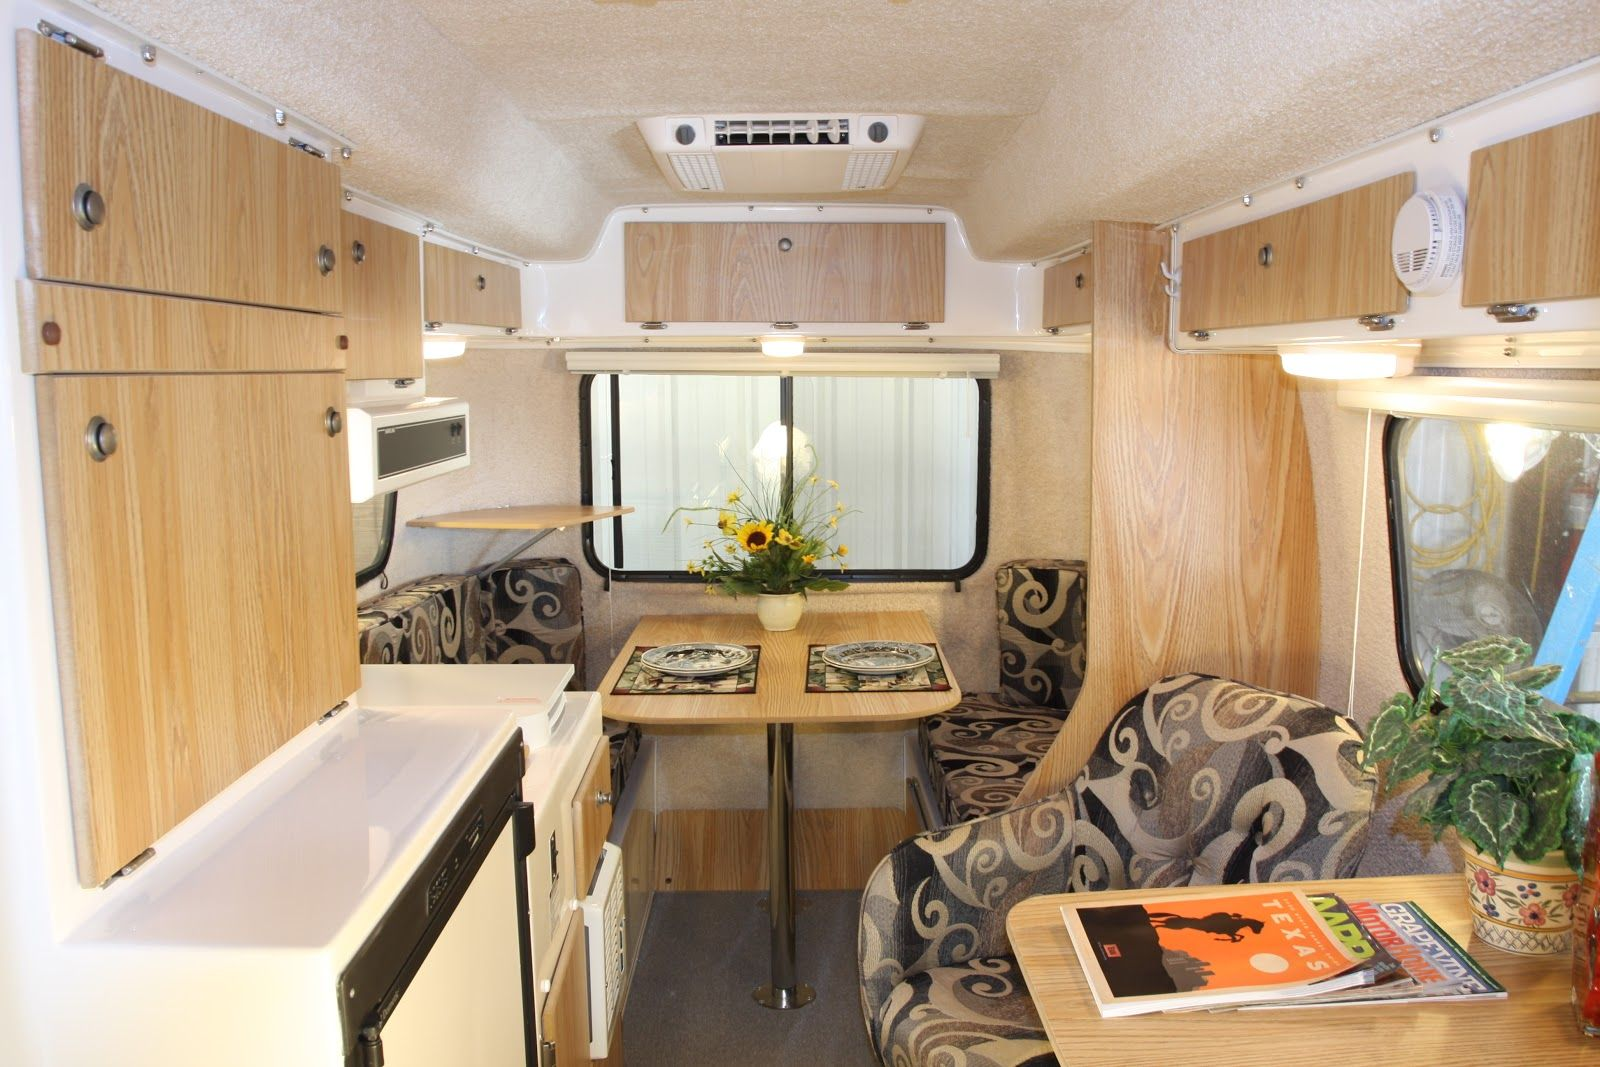 Casita Travel Trailers Interior Posted By Casita Camper At 10 25 Am No Comments Places To